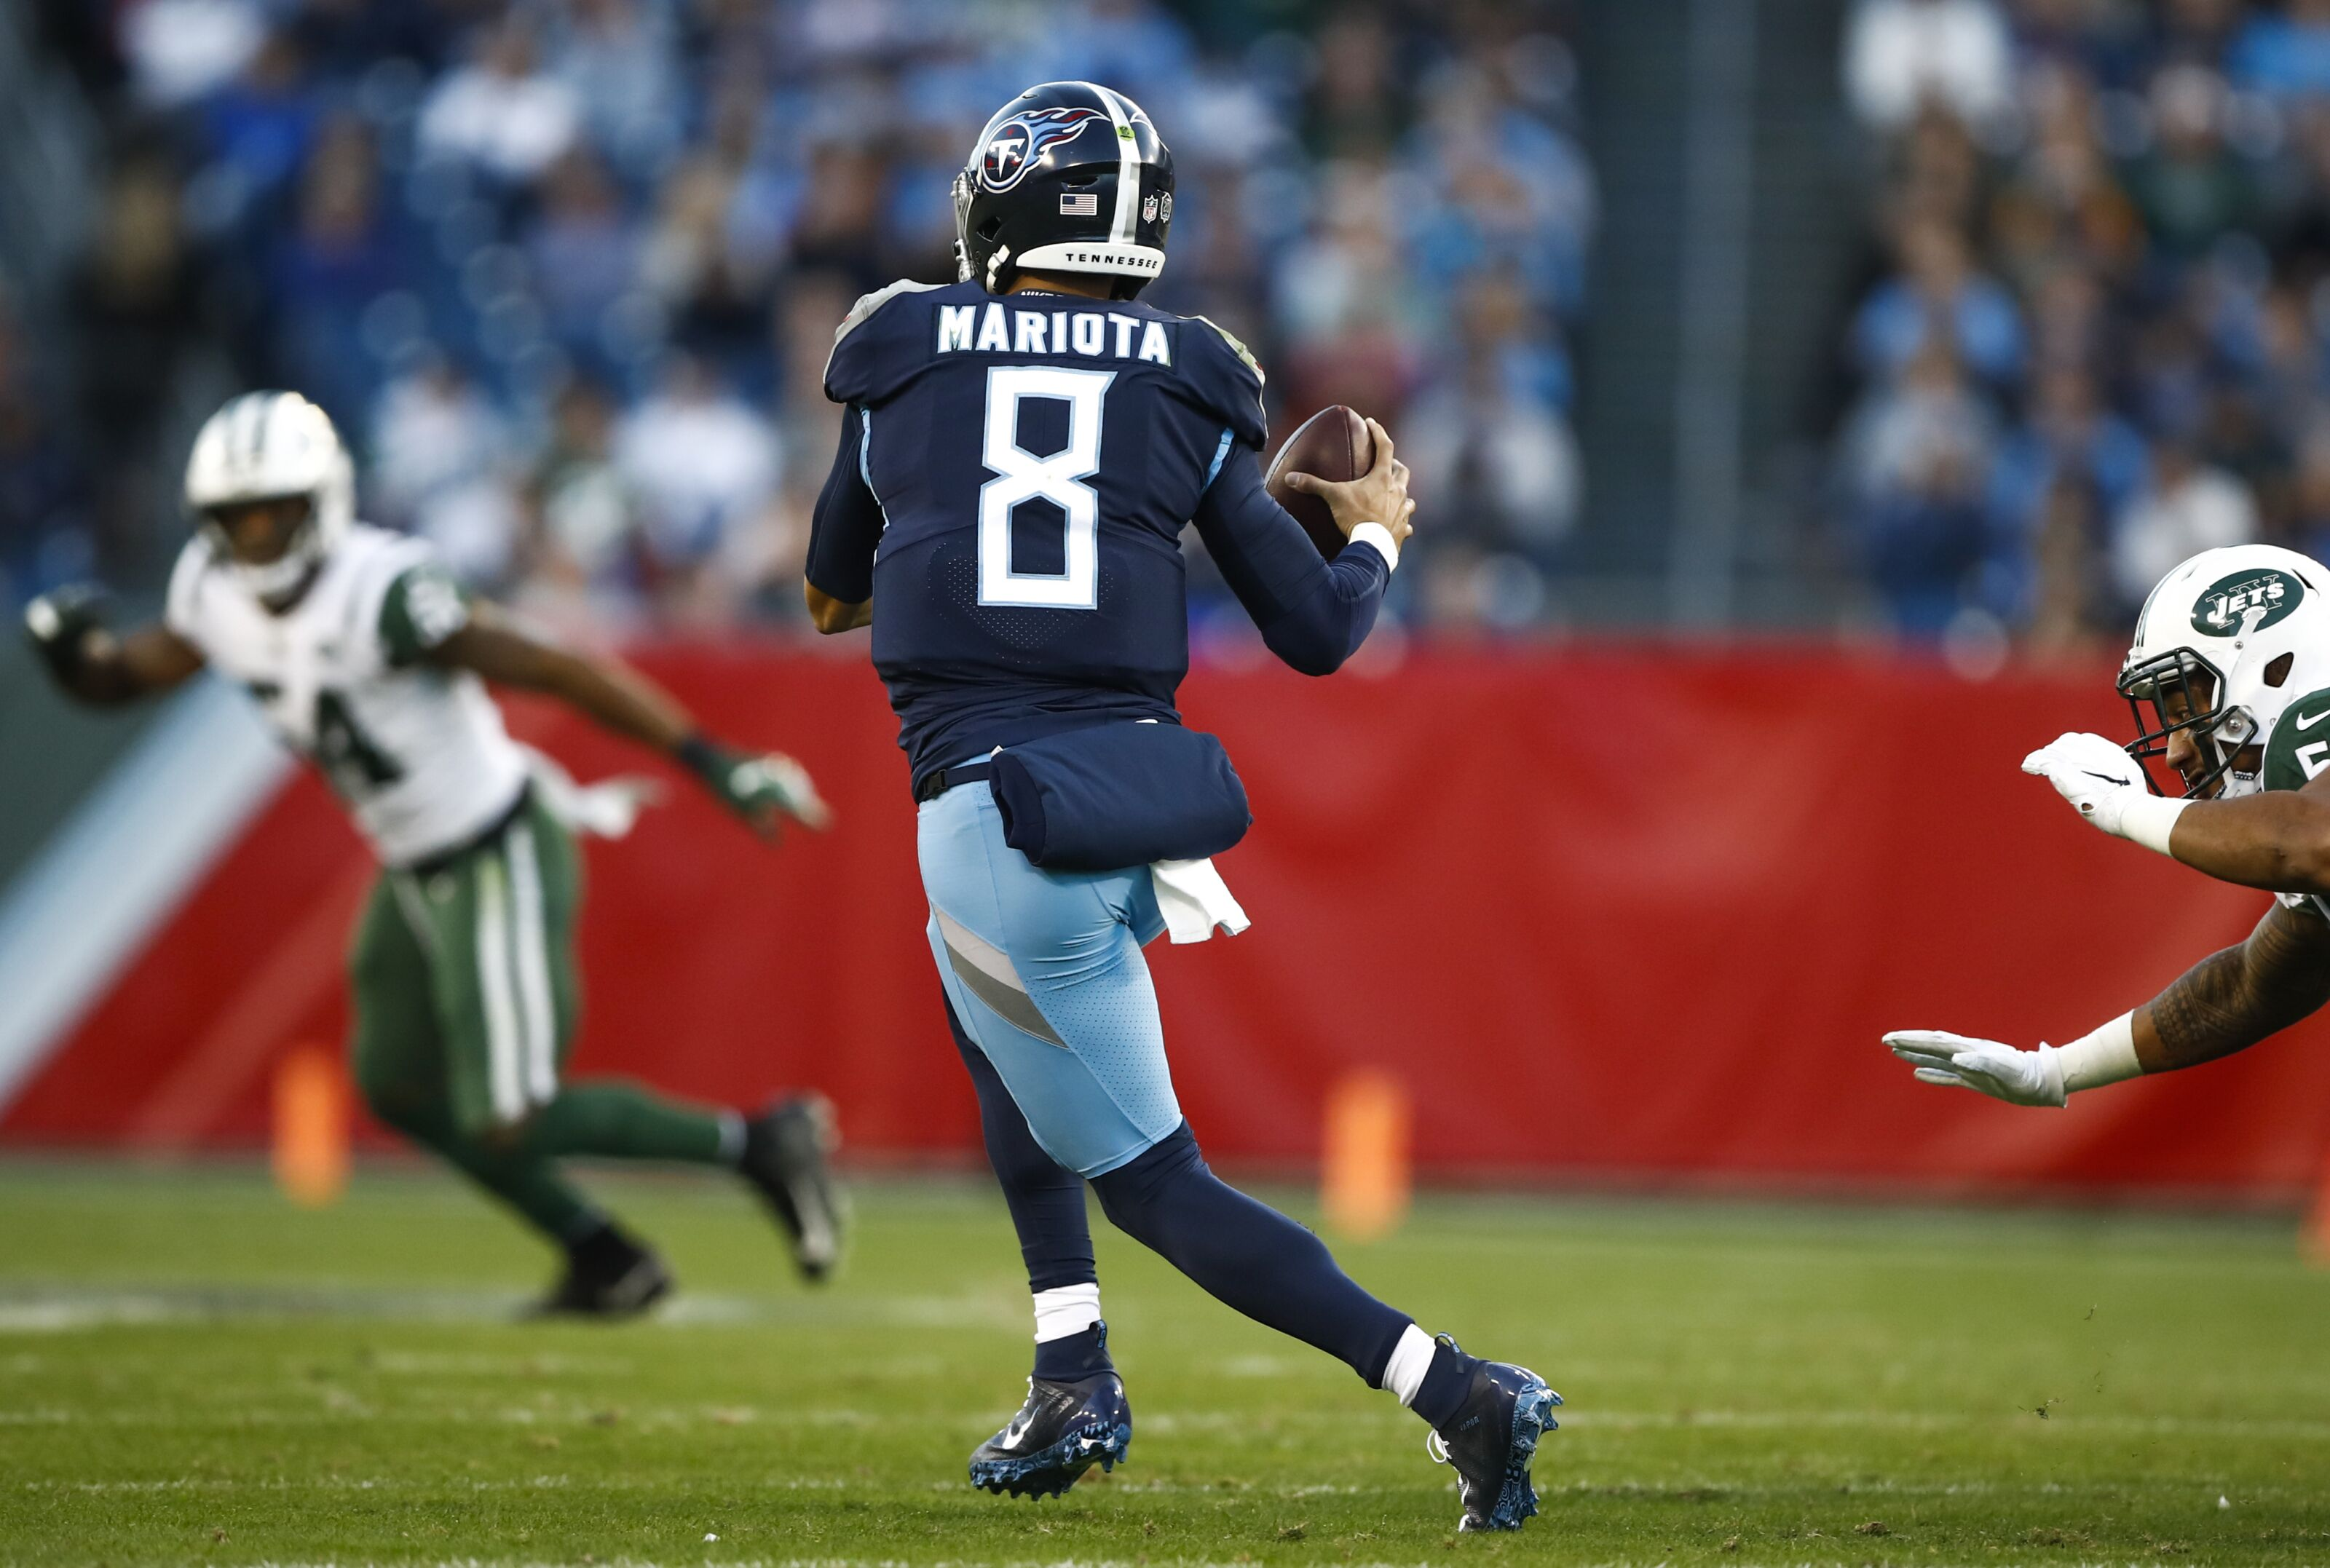 Will New York Giants see the 'real' Marcus Mariota?